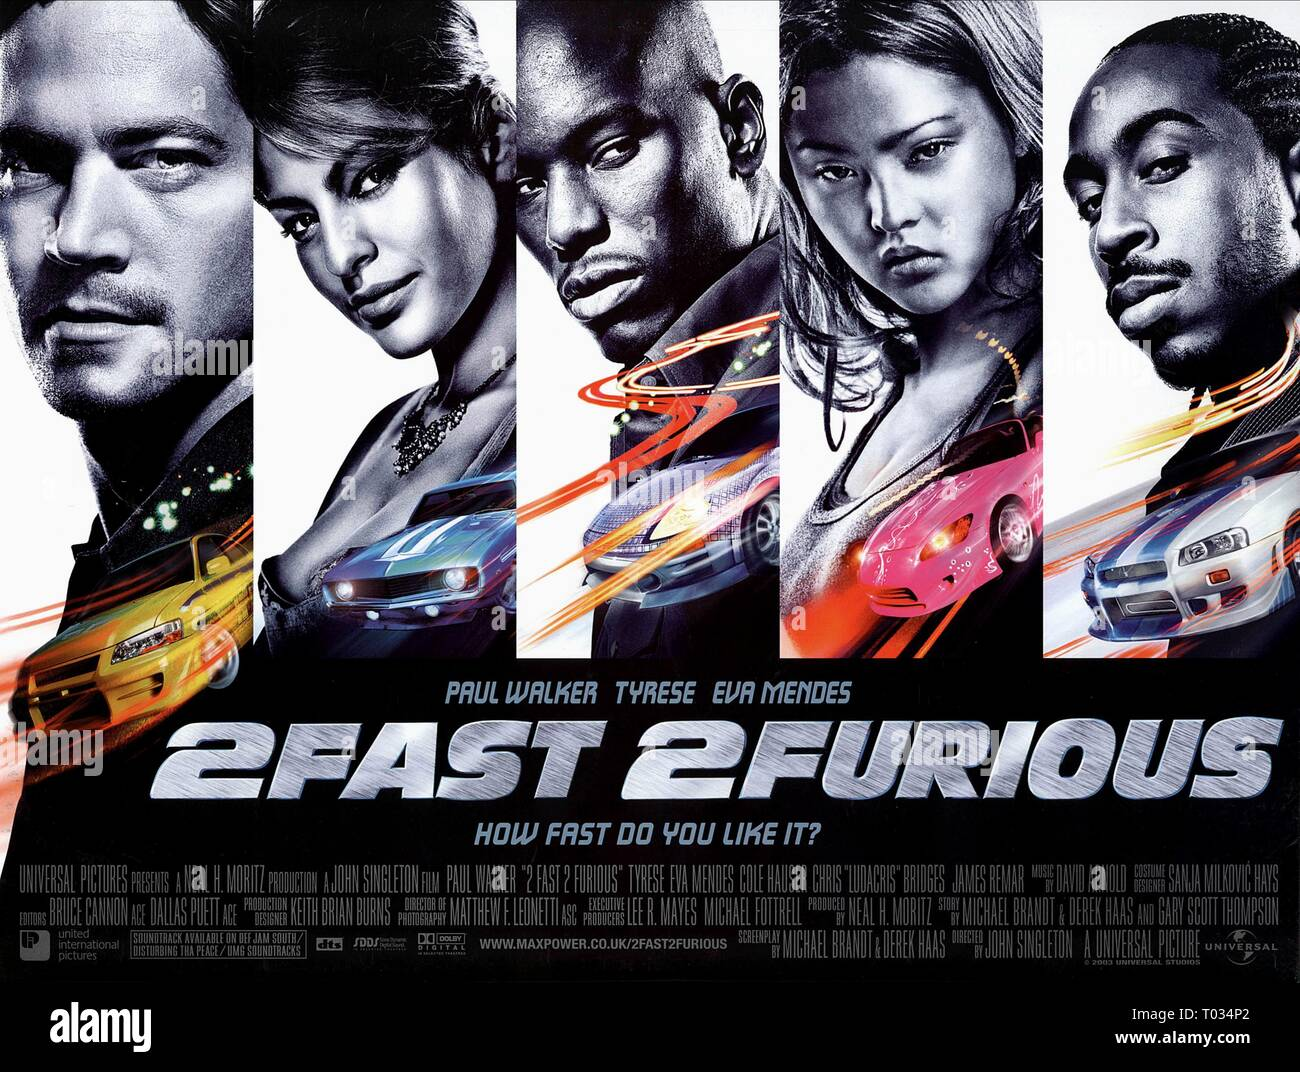 2 FAST 2 FURIOUS, PAUL WALKER, TYRESE GIBSON, EVA MENDES, CHRIS LUDACRIS BRIDGES , DEVON AOKI, 2003 - Stock Image